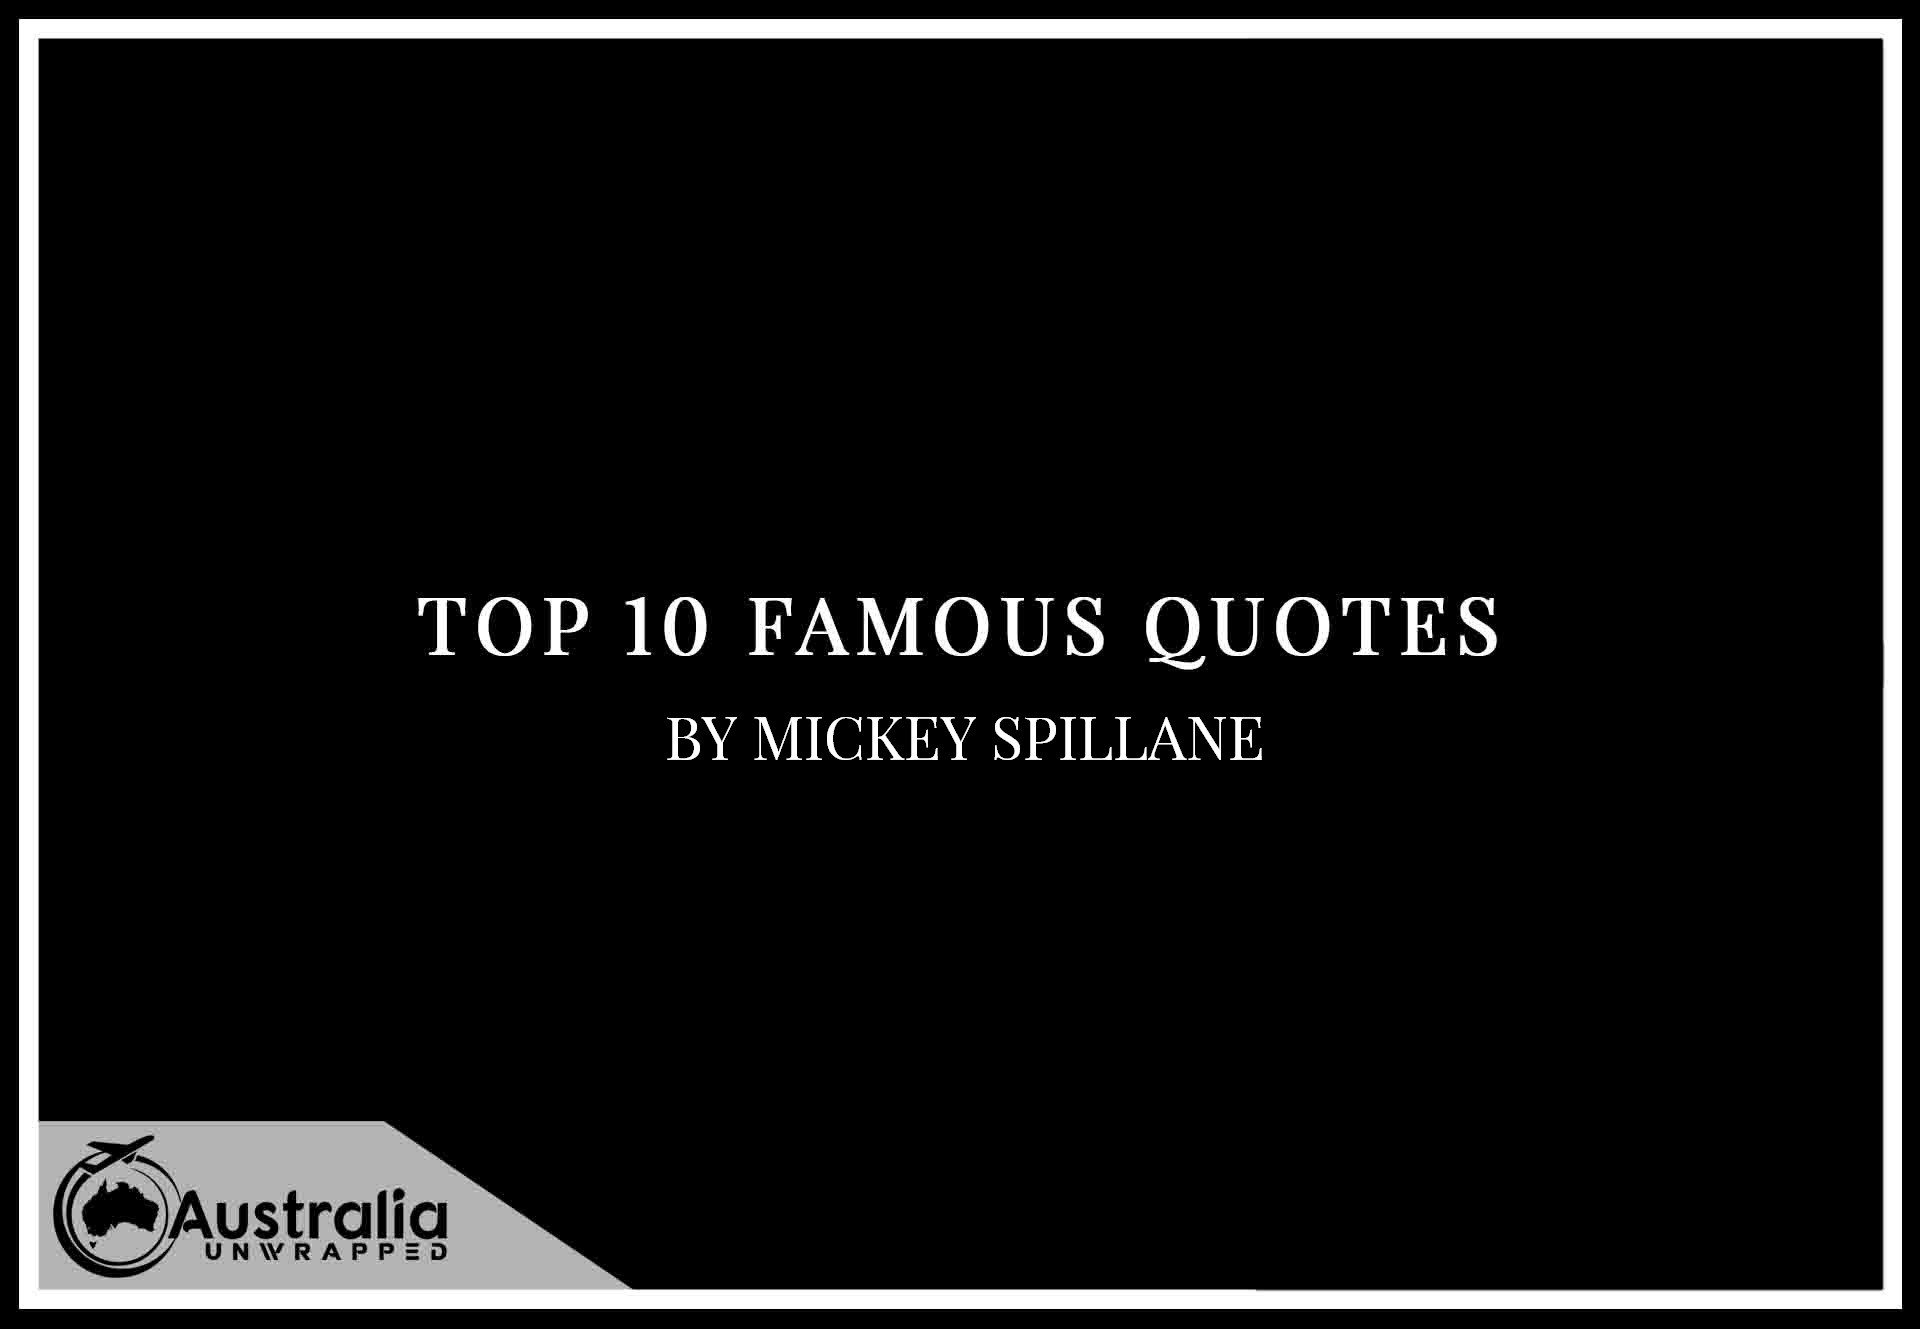 Top 10 Famous Quotes by Author Mickey Spillane